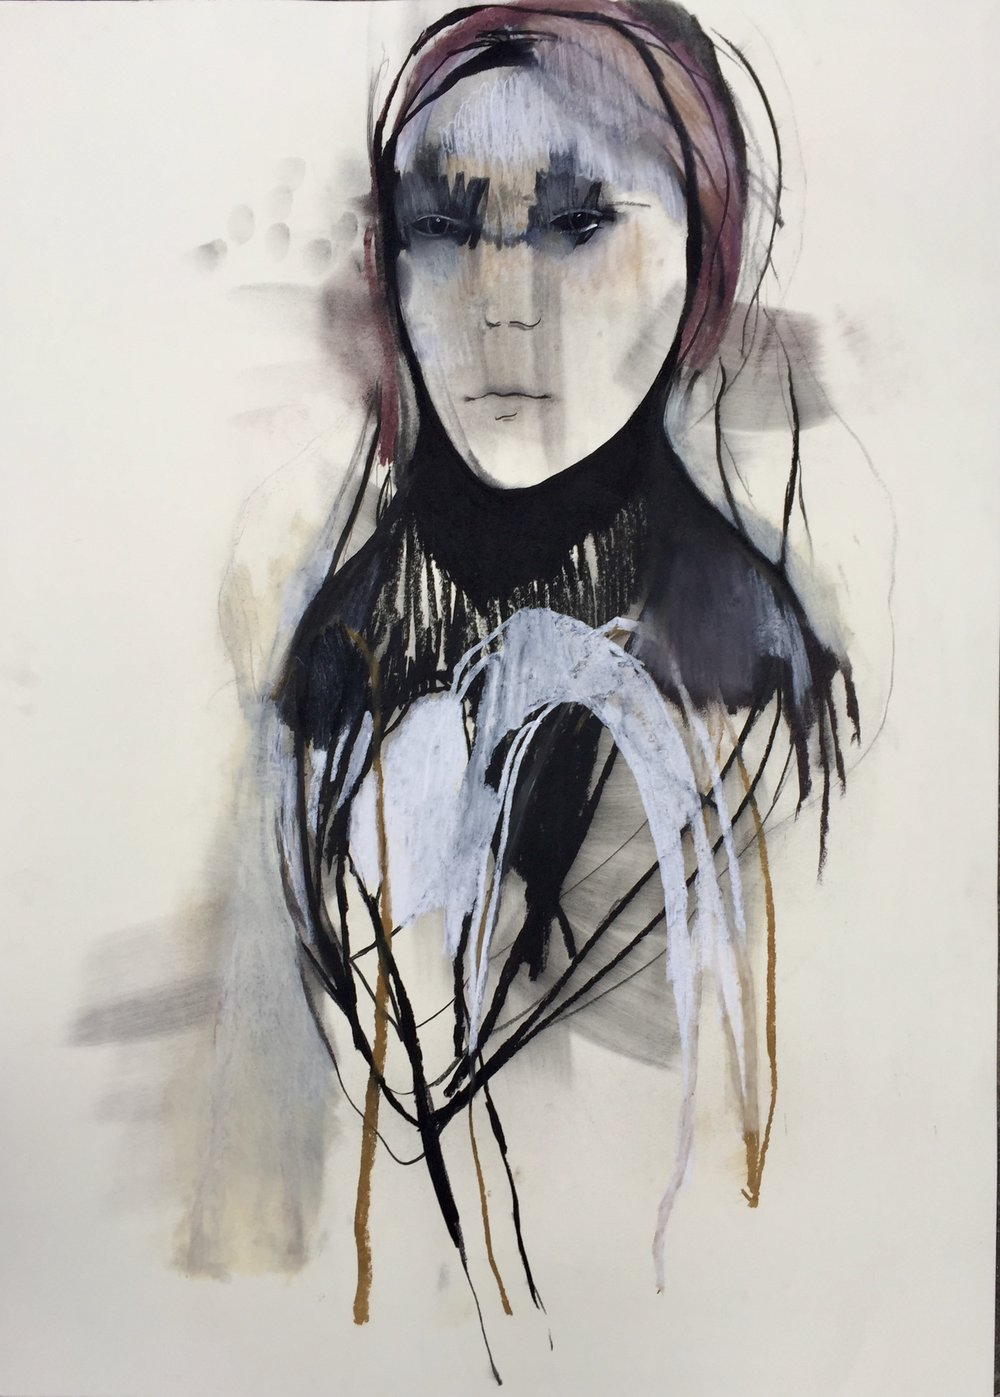 Samer ,146 x 107 cm. Charcoal and pastel on paper, 2018